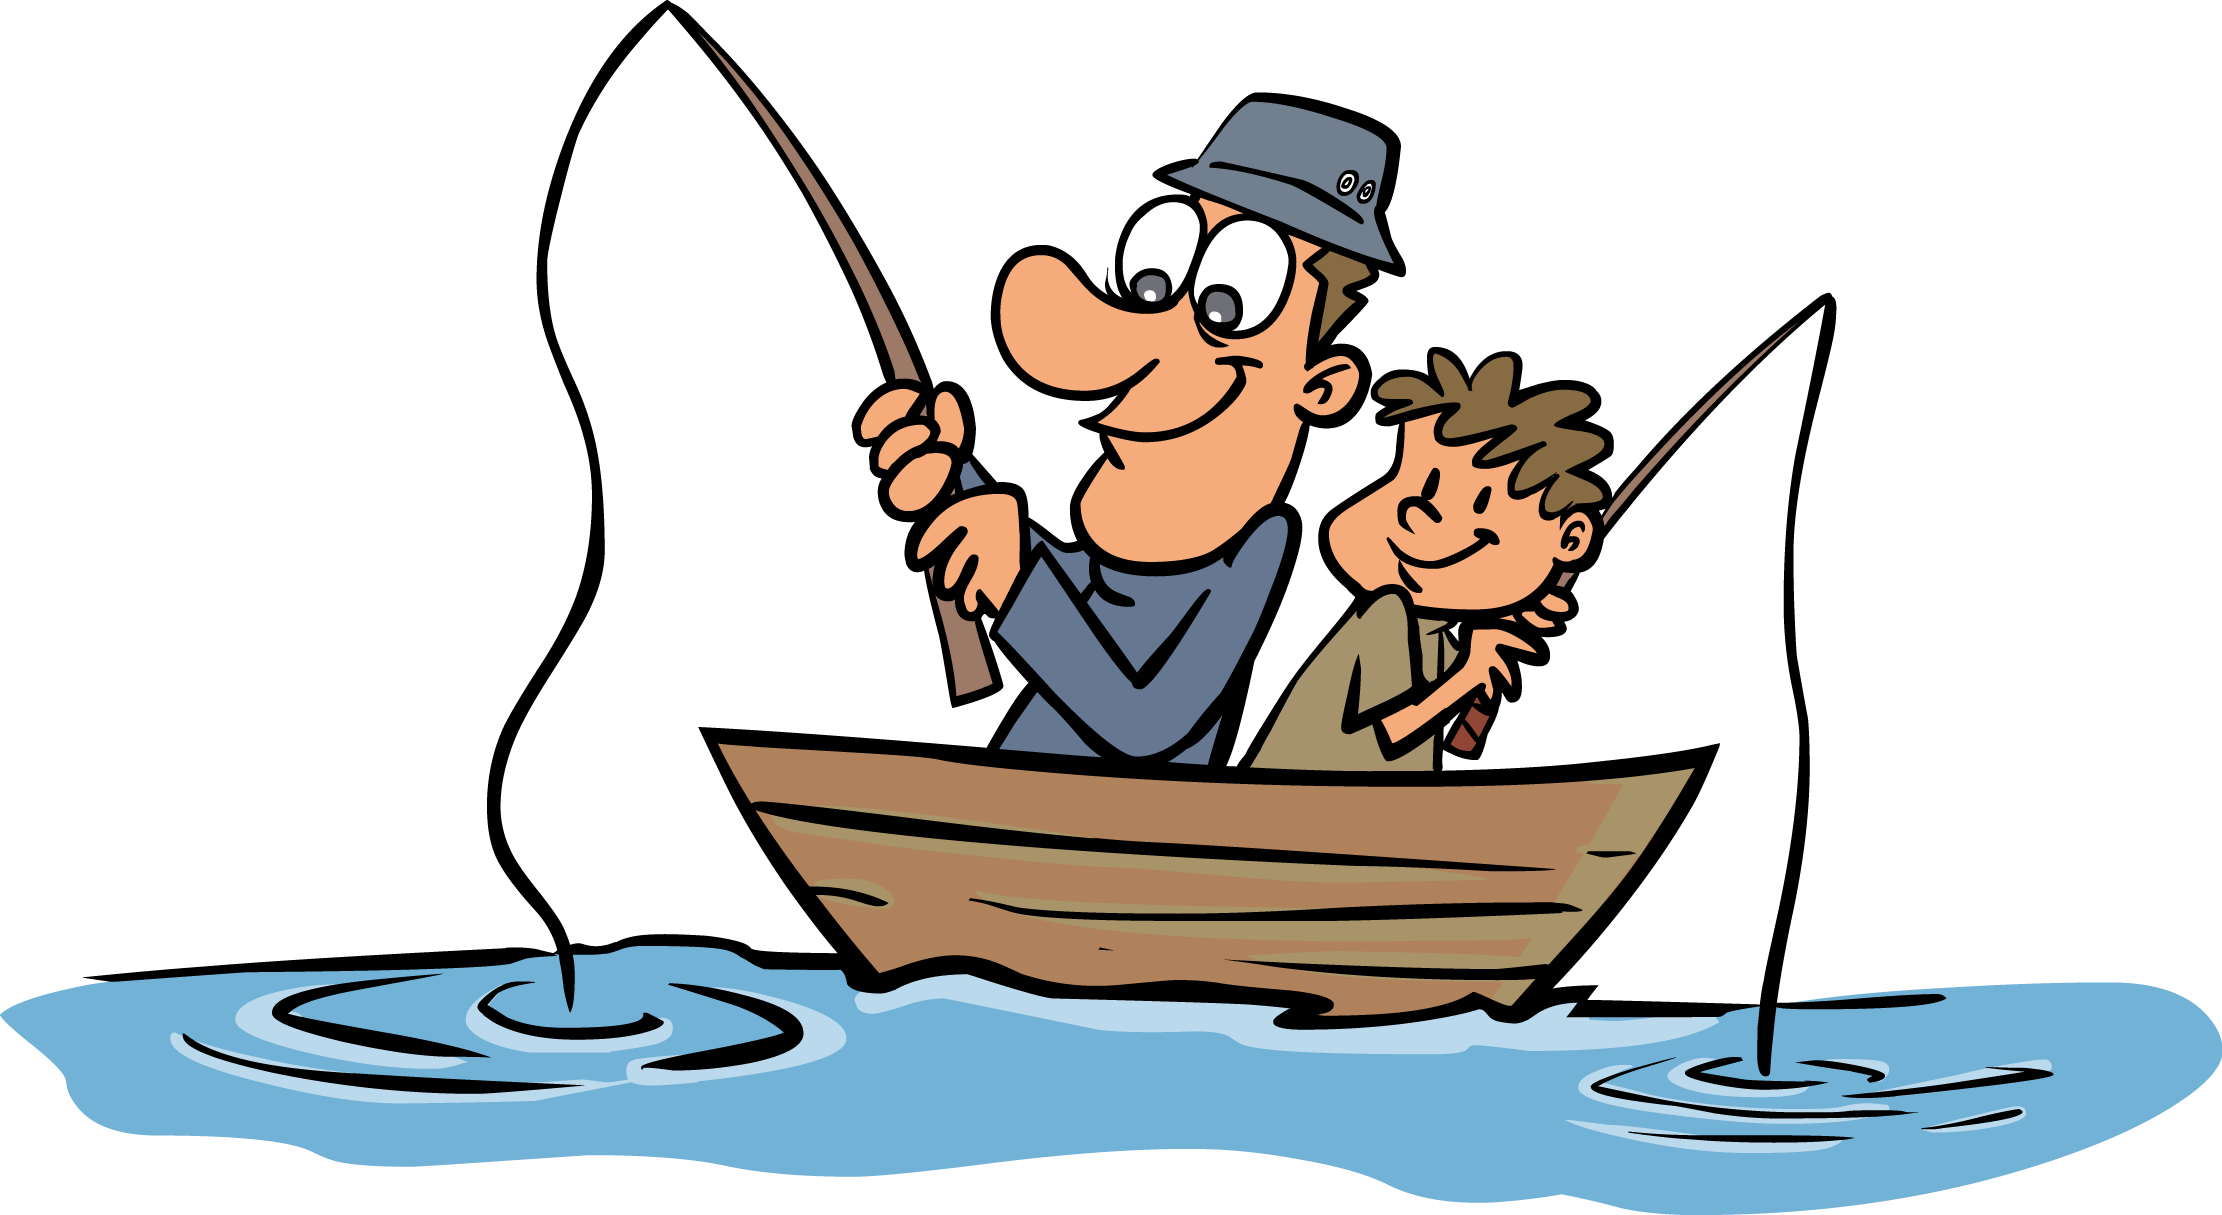 catch-a-fish-clipart-6.png